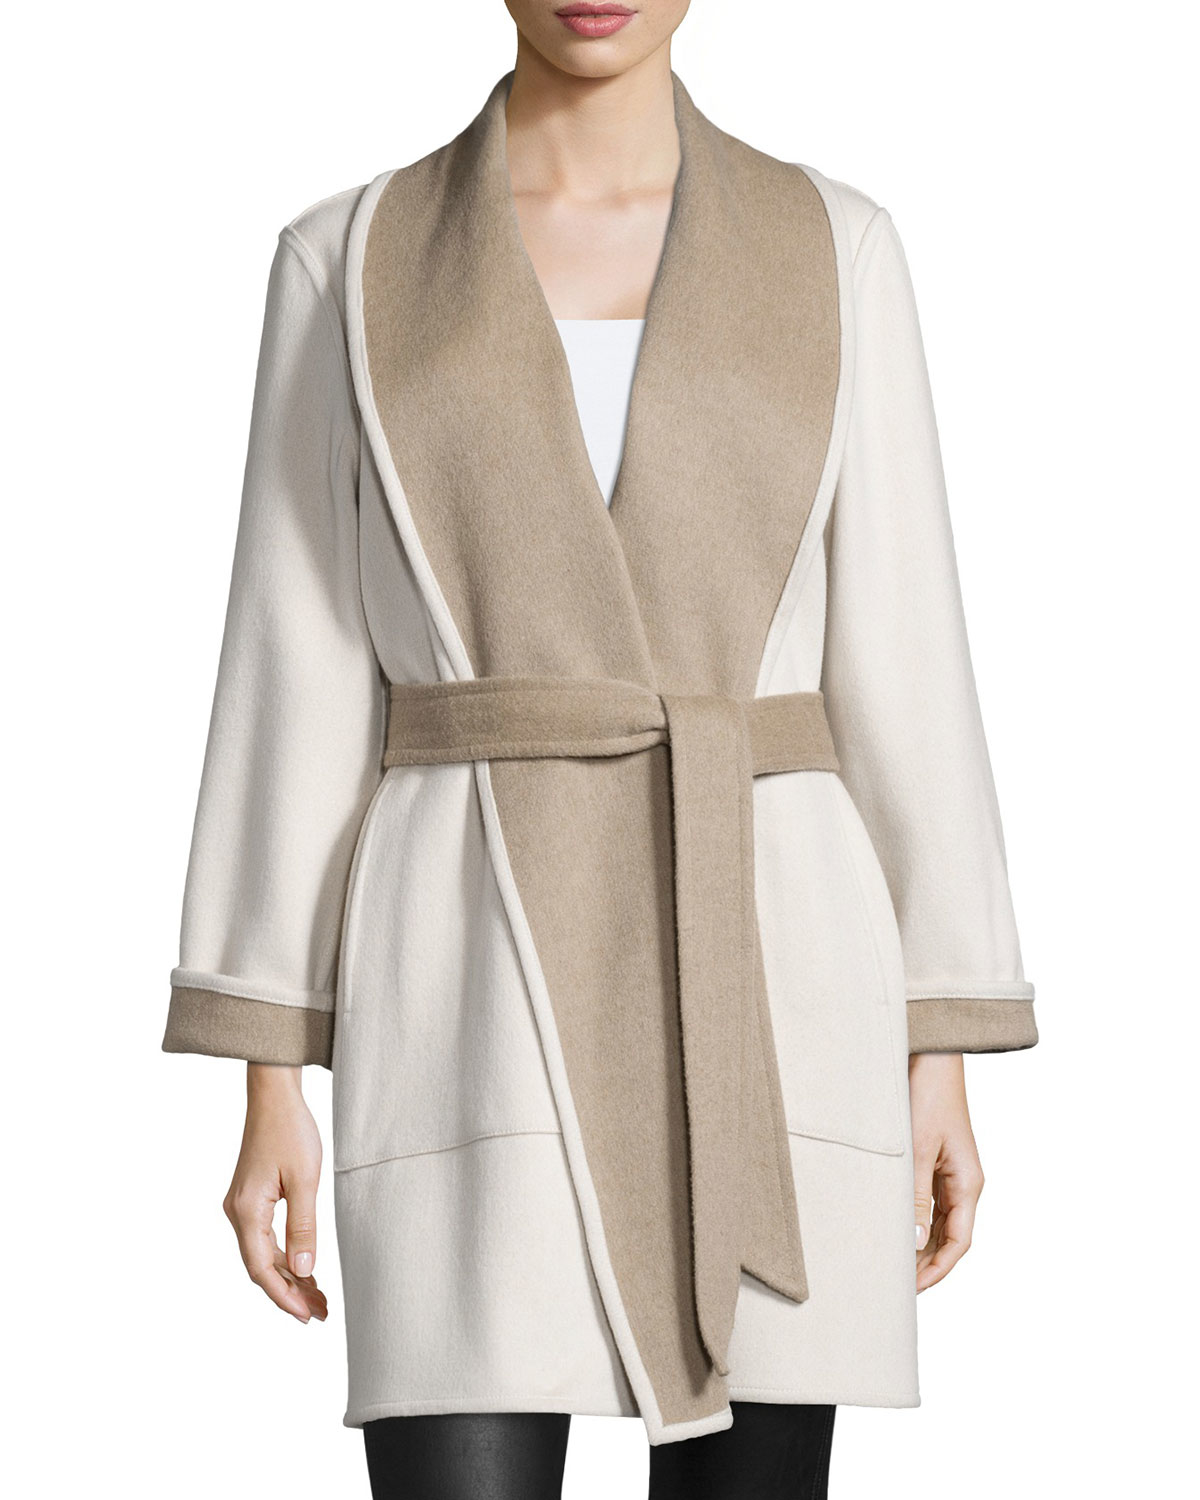 Sofia cashmere Reversible Double-face Wrap Coat in Gray | Lyst